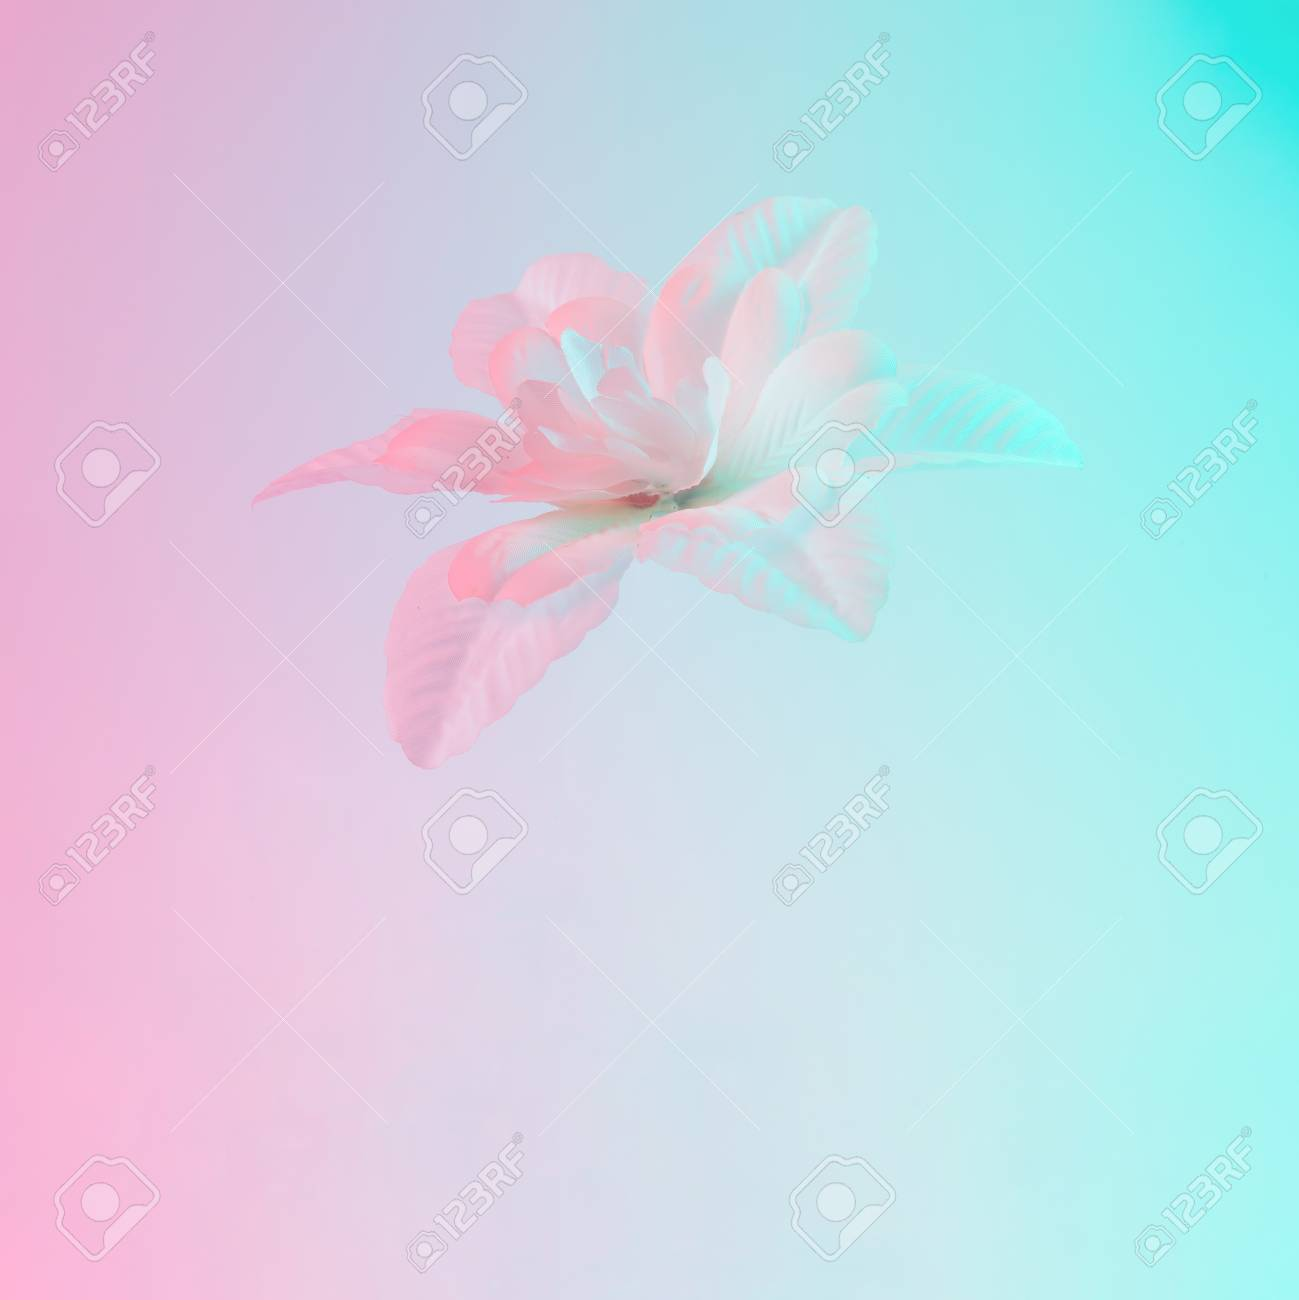 White flower in vibrant bold gradient holographic colors. Concept art. Minimal surrealism. - 97852159